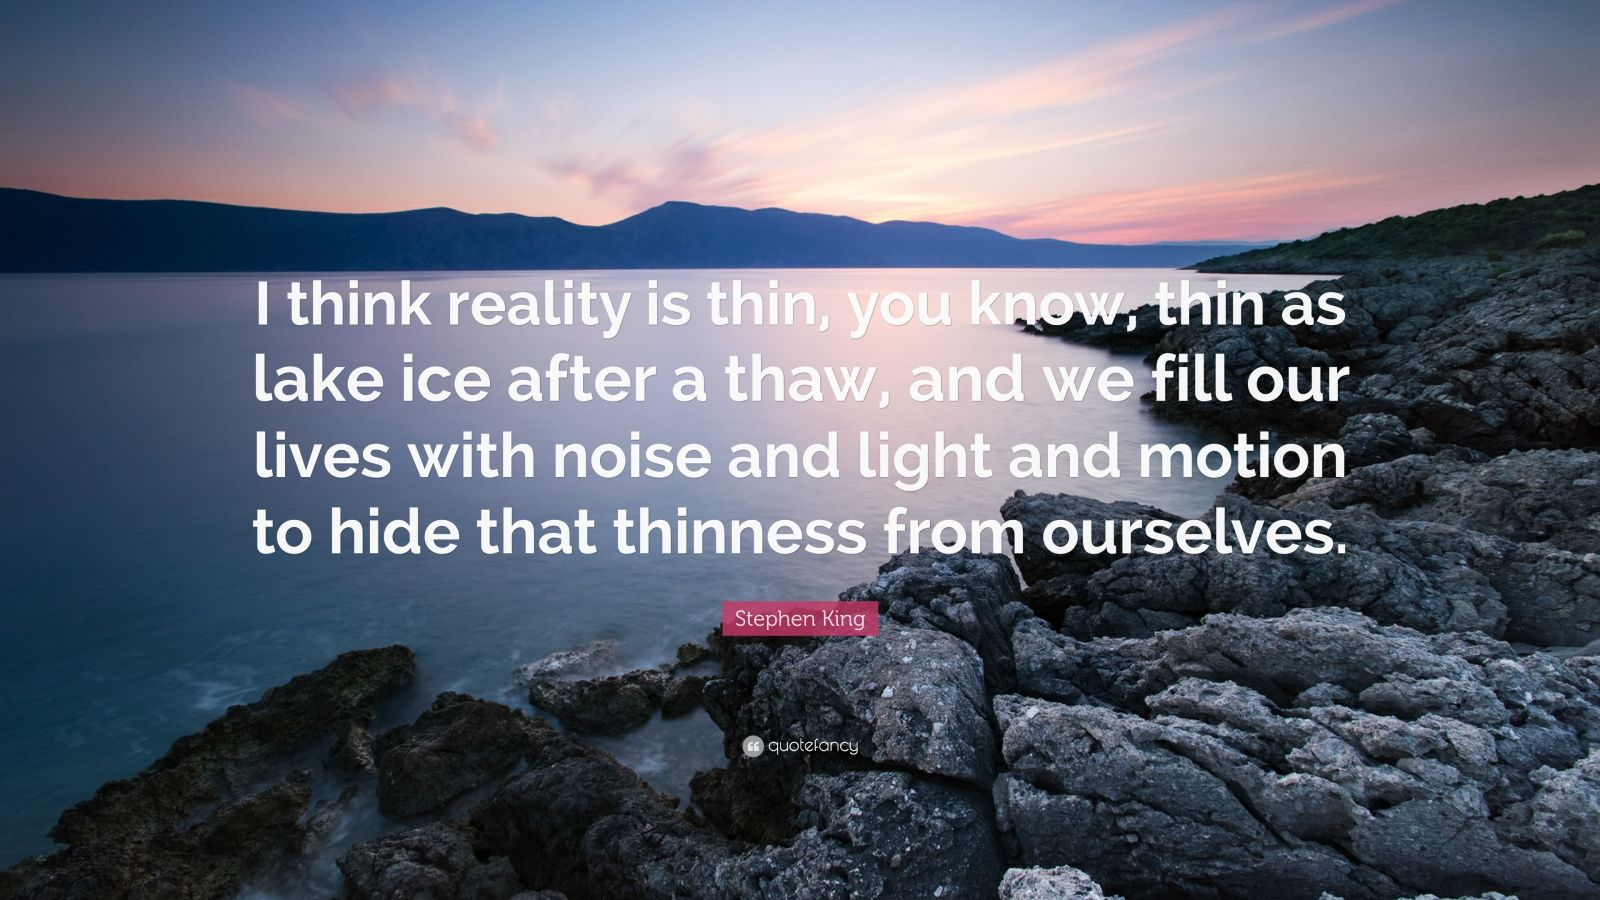 "Stephen King Quote: ""I think reality is thin, you know, thin as lake ice after a thaw, and we fill our lives with noise and light and motion to hide that thinness from ourselves."""